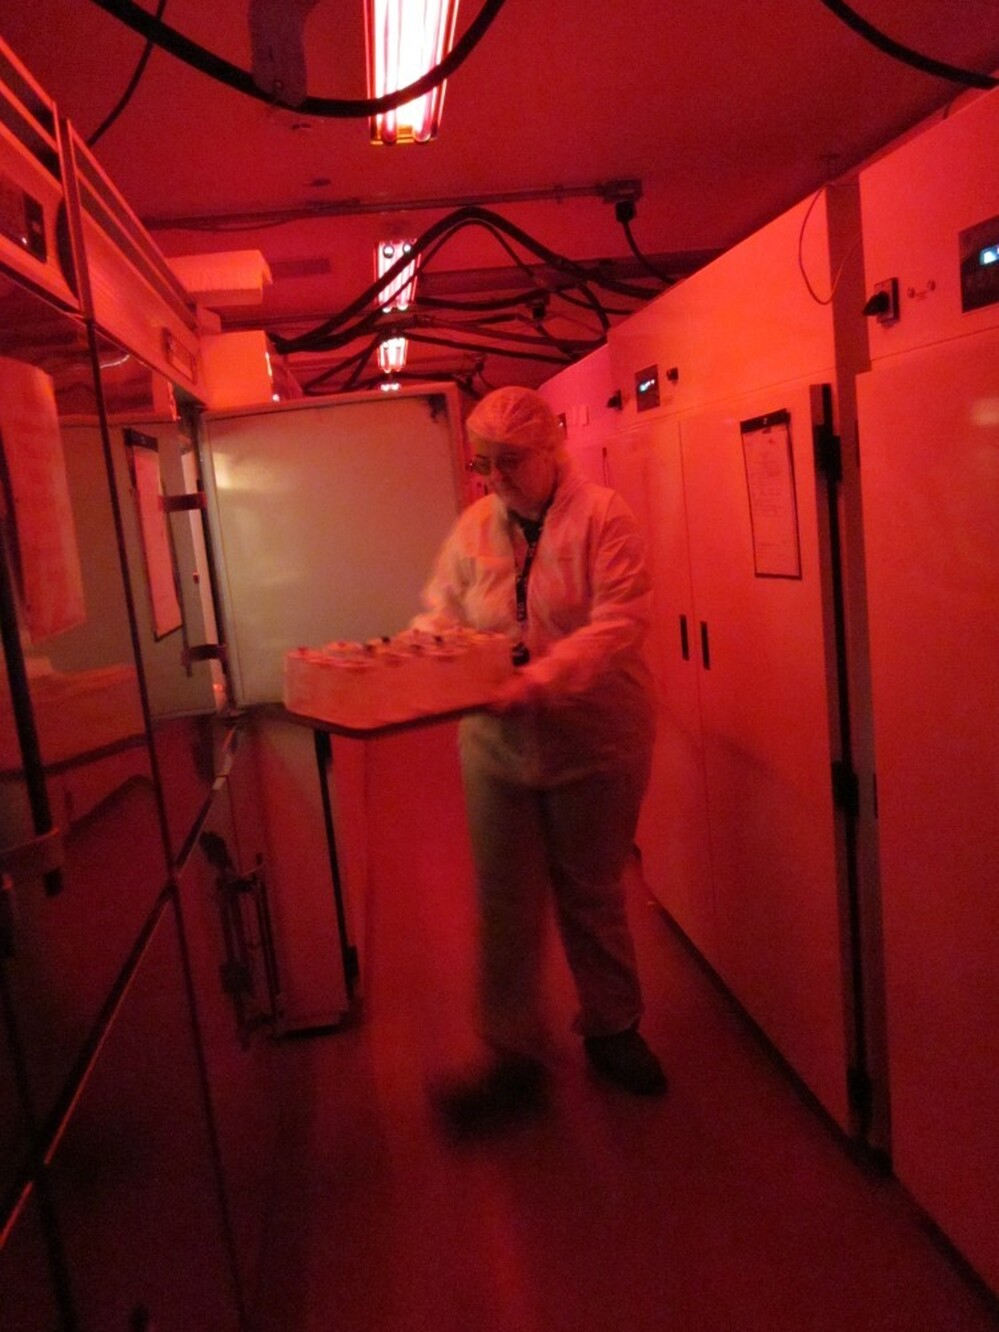 Kathy Tatman removes jars from an insect growth chamber at a quarantine lab at the U.S. Department of Agriculture's Beneficial Insects Introduction Research Unit. Most insects can't see red, so the red light lights essentially keep the insects in the dark, making them less likely to fly around and escape.